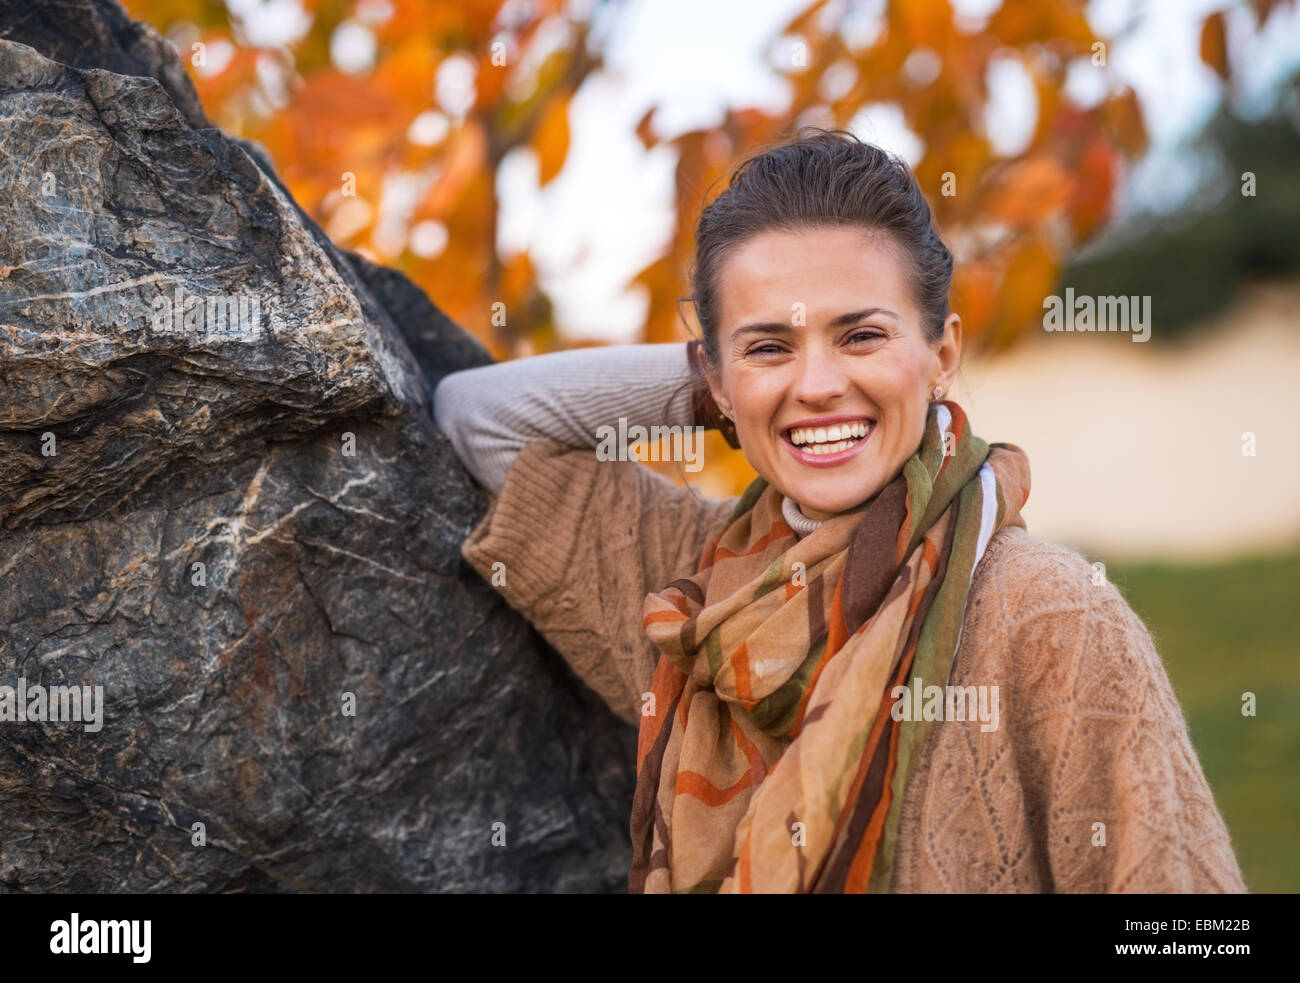 Portrait of smiling young woman in autumn outdoors in evening - Stock Image